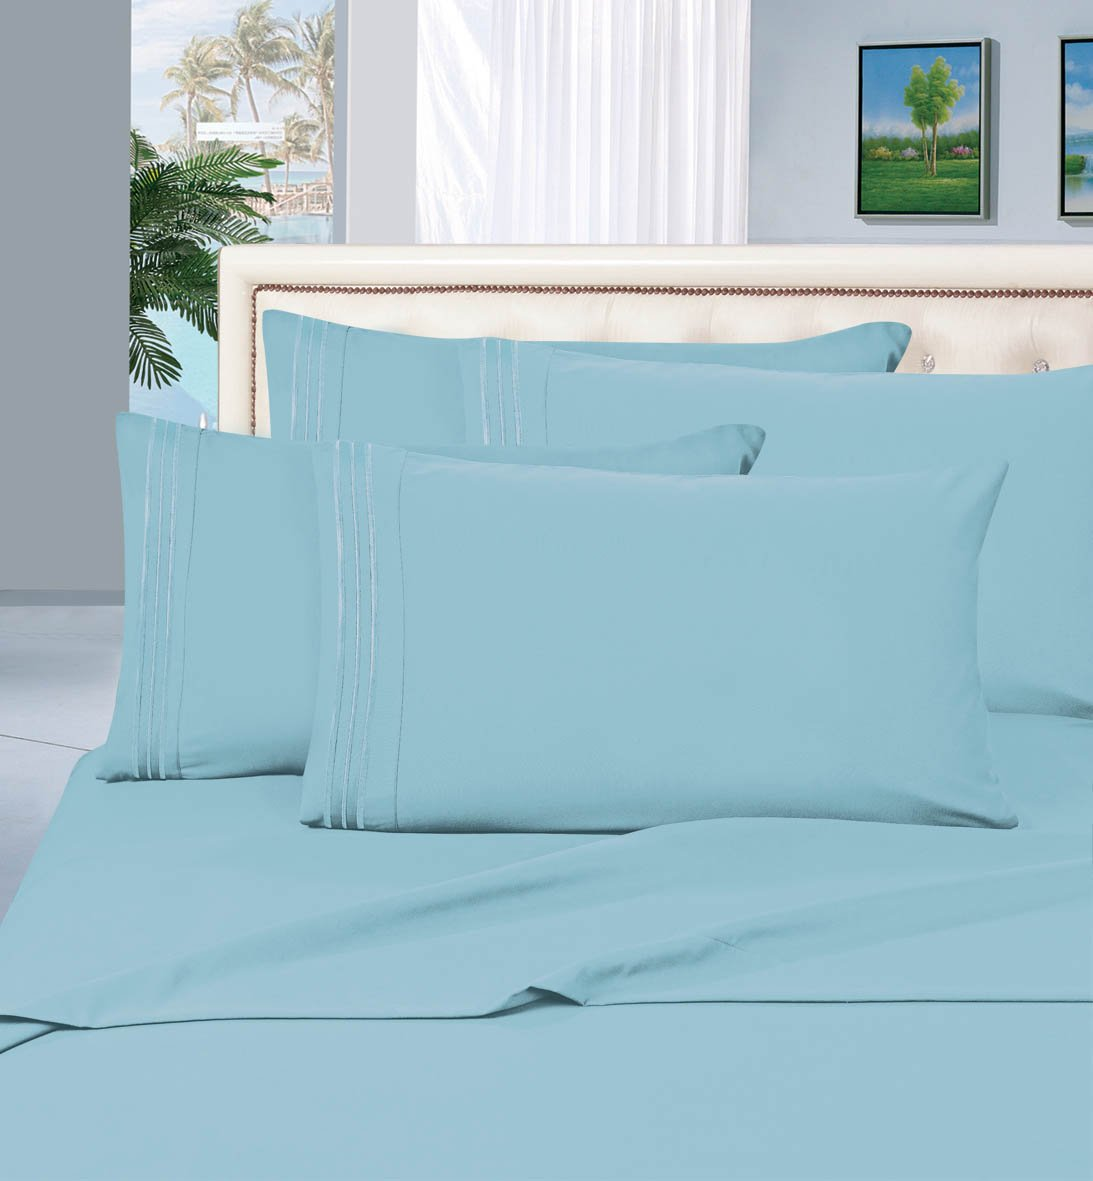 Elegant Comfort 1500 Thread Count Egyptian Quality Wrinkle,Fade and Stain Resistant 4-Piece Bed Sheet Set, Deep Pocket, HypoAllergenic, California King, Aqua